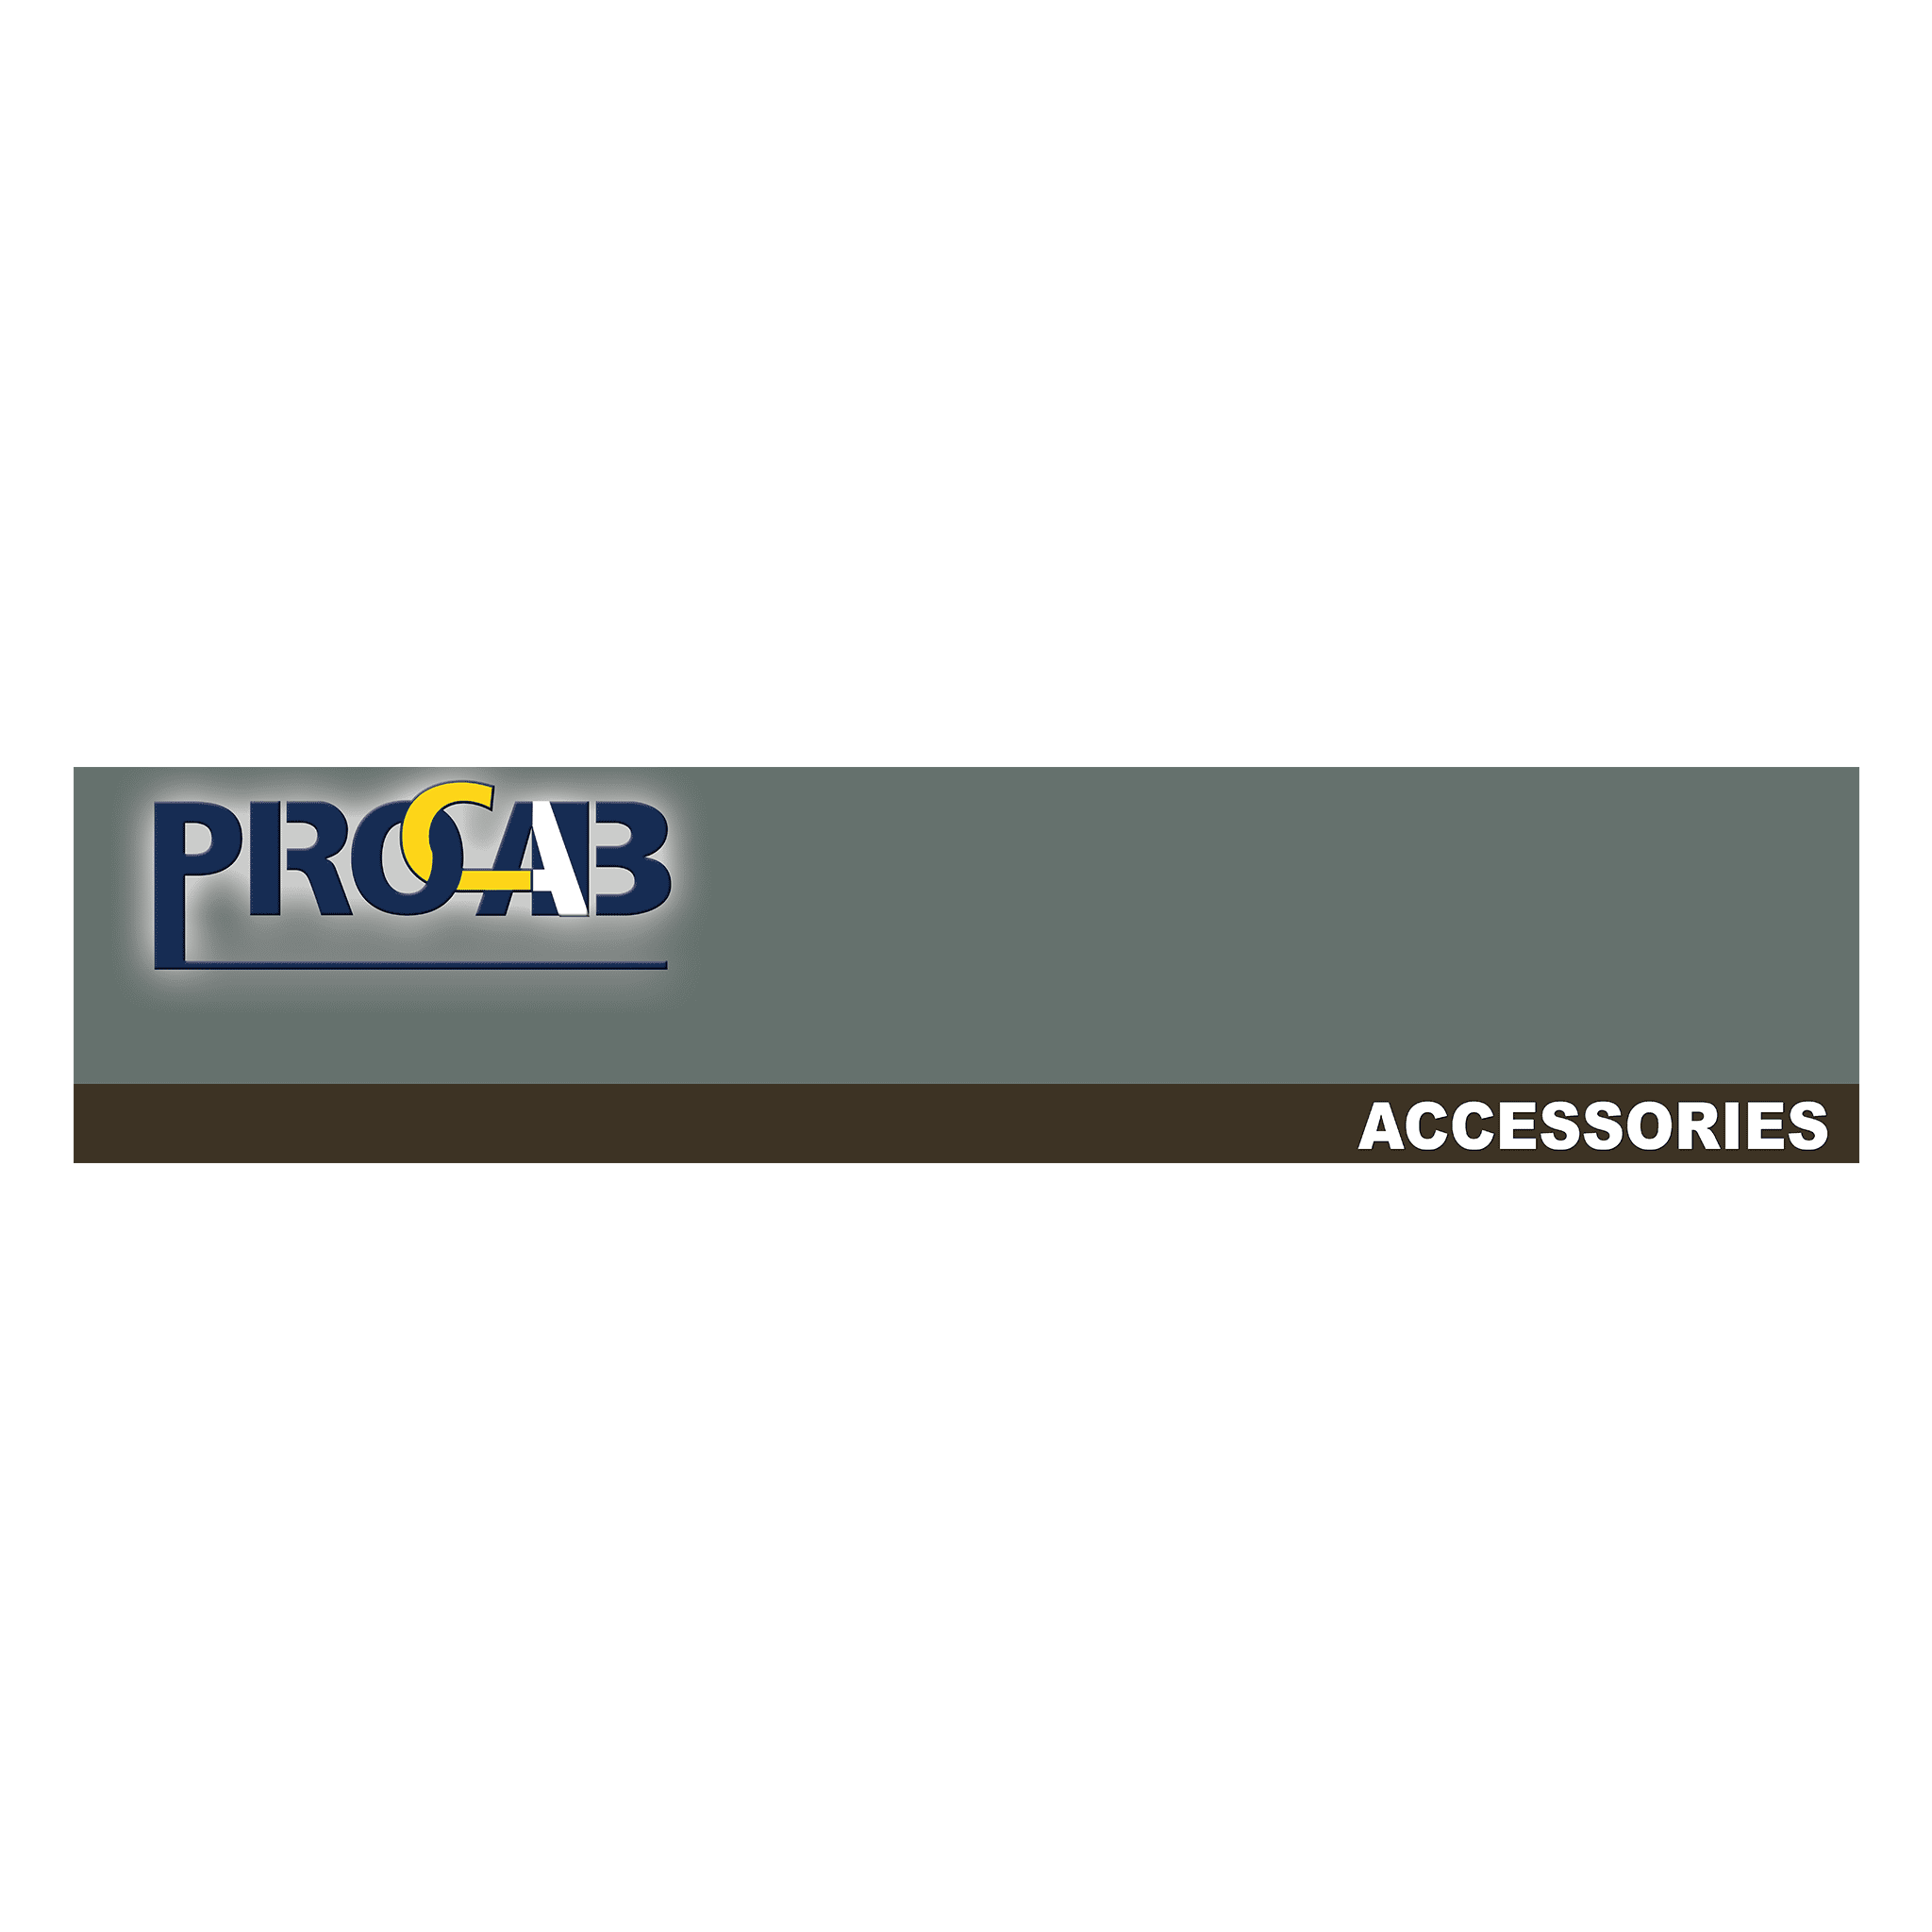 PROMORD240546091 - Display stand rd4000 - PROCAB - accessories display 90 cm